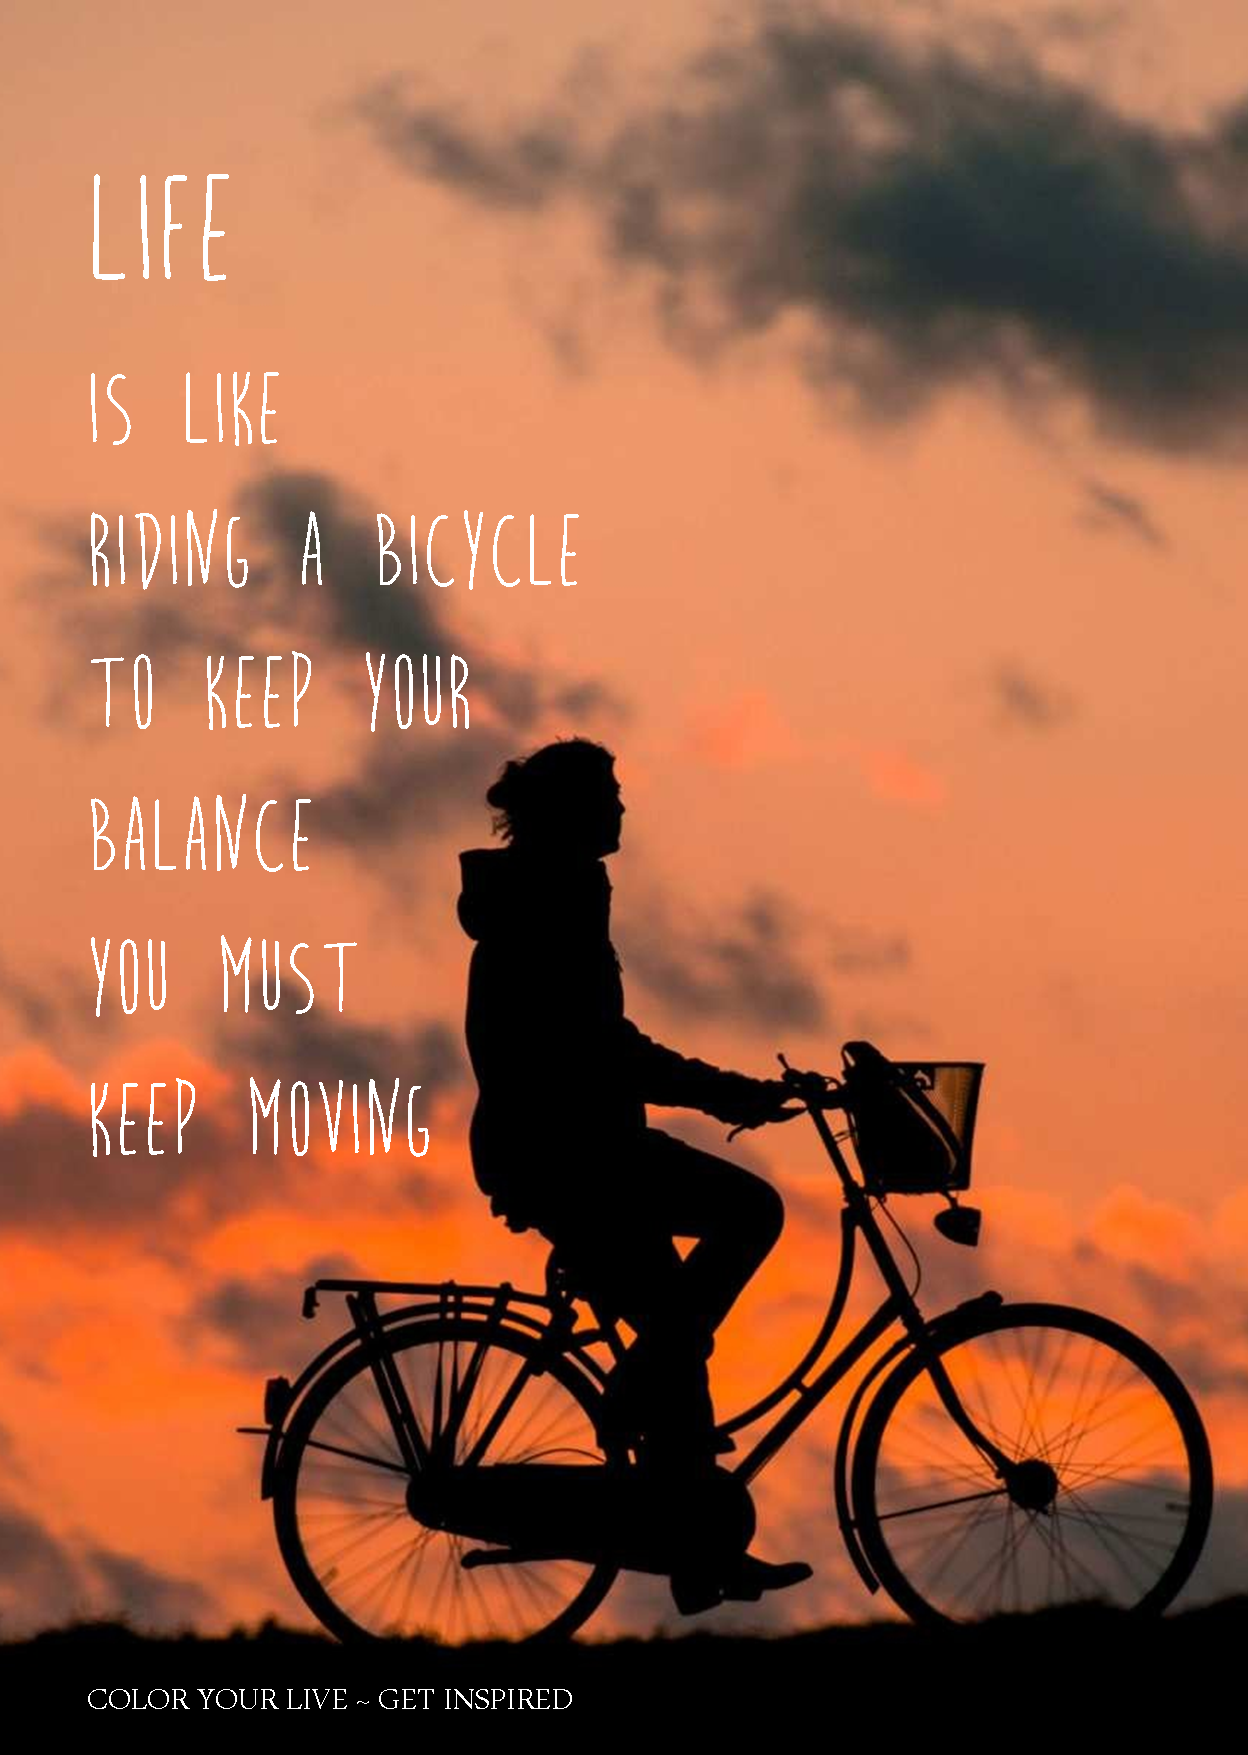 Color Your Life Quotes Life Is Like A Bicyclemooie Quote  Tekst Voor Een Poster Of